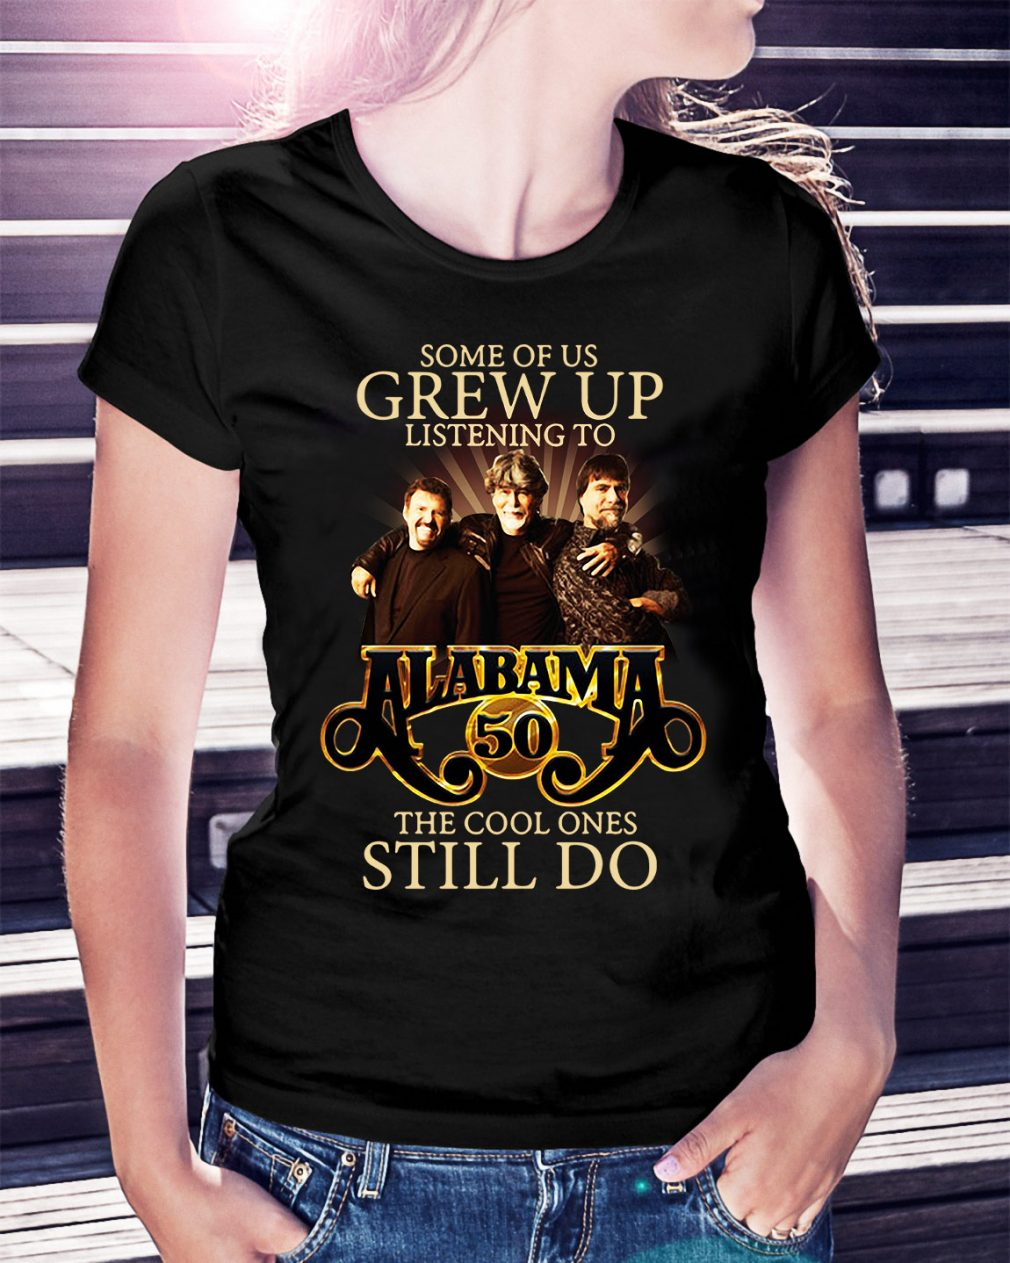 Some of us grew up listening to Alabama 50 the cool ones still do Ladies Tee